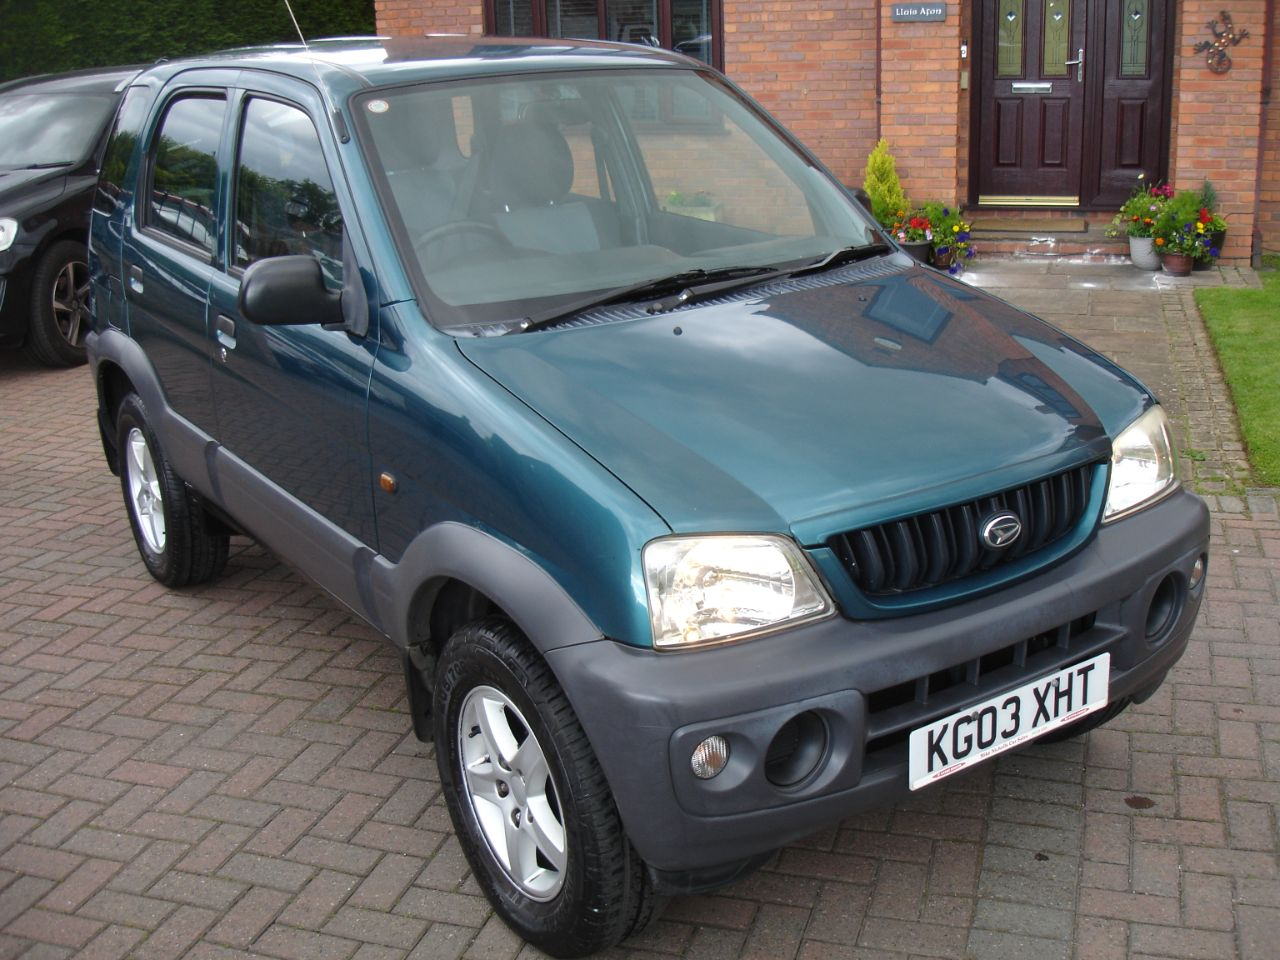 Daihatsu Terios 1.3 EL 5dr Automatic 4x4 Hatchback Petrol Metallic Green at Level Pitch Selby